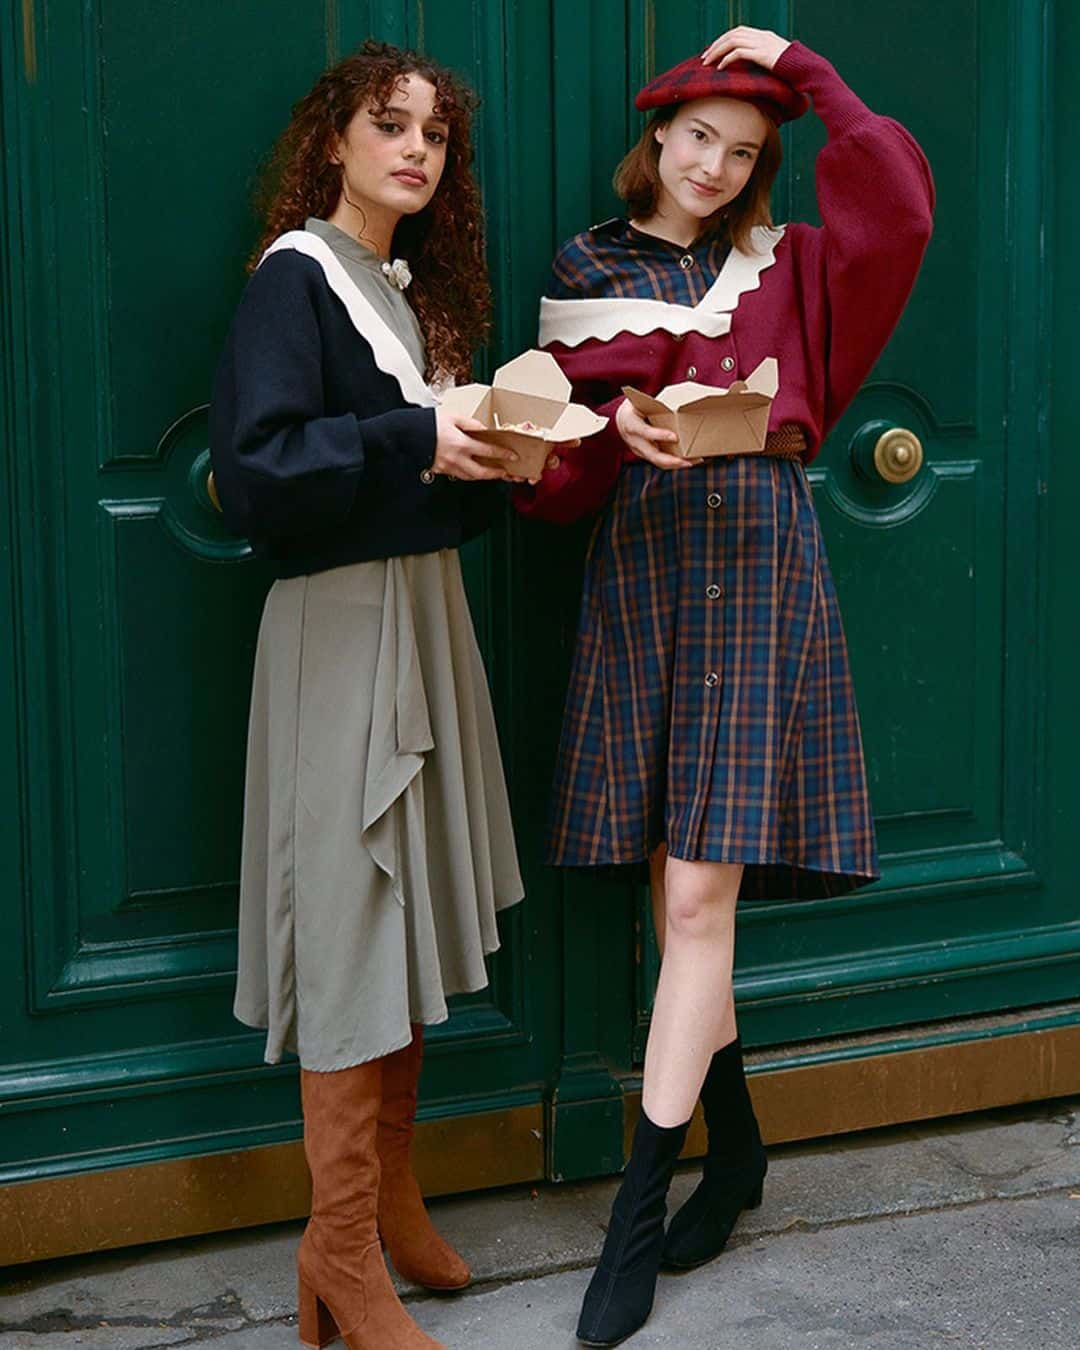 Two models in vintage outfits on a bench